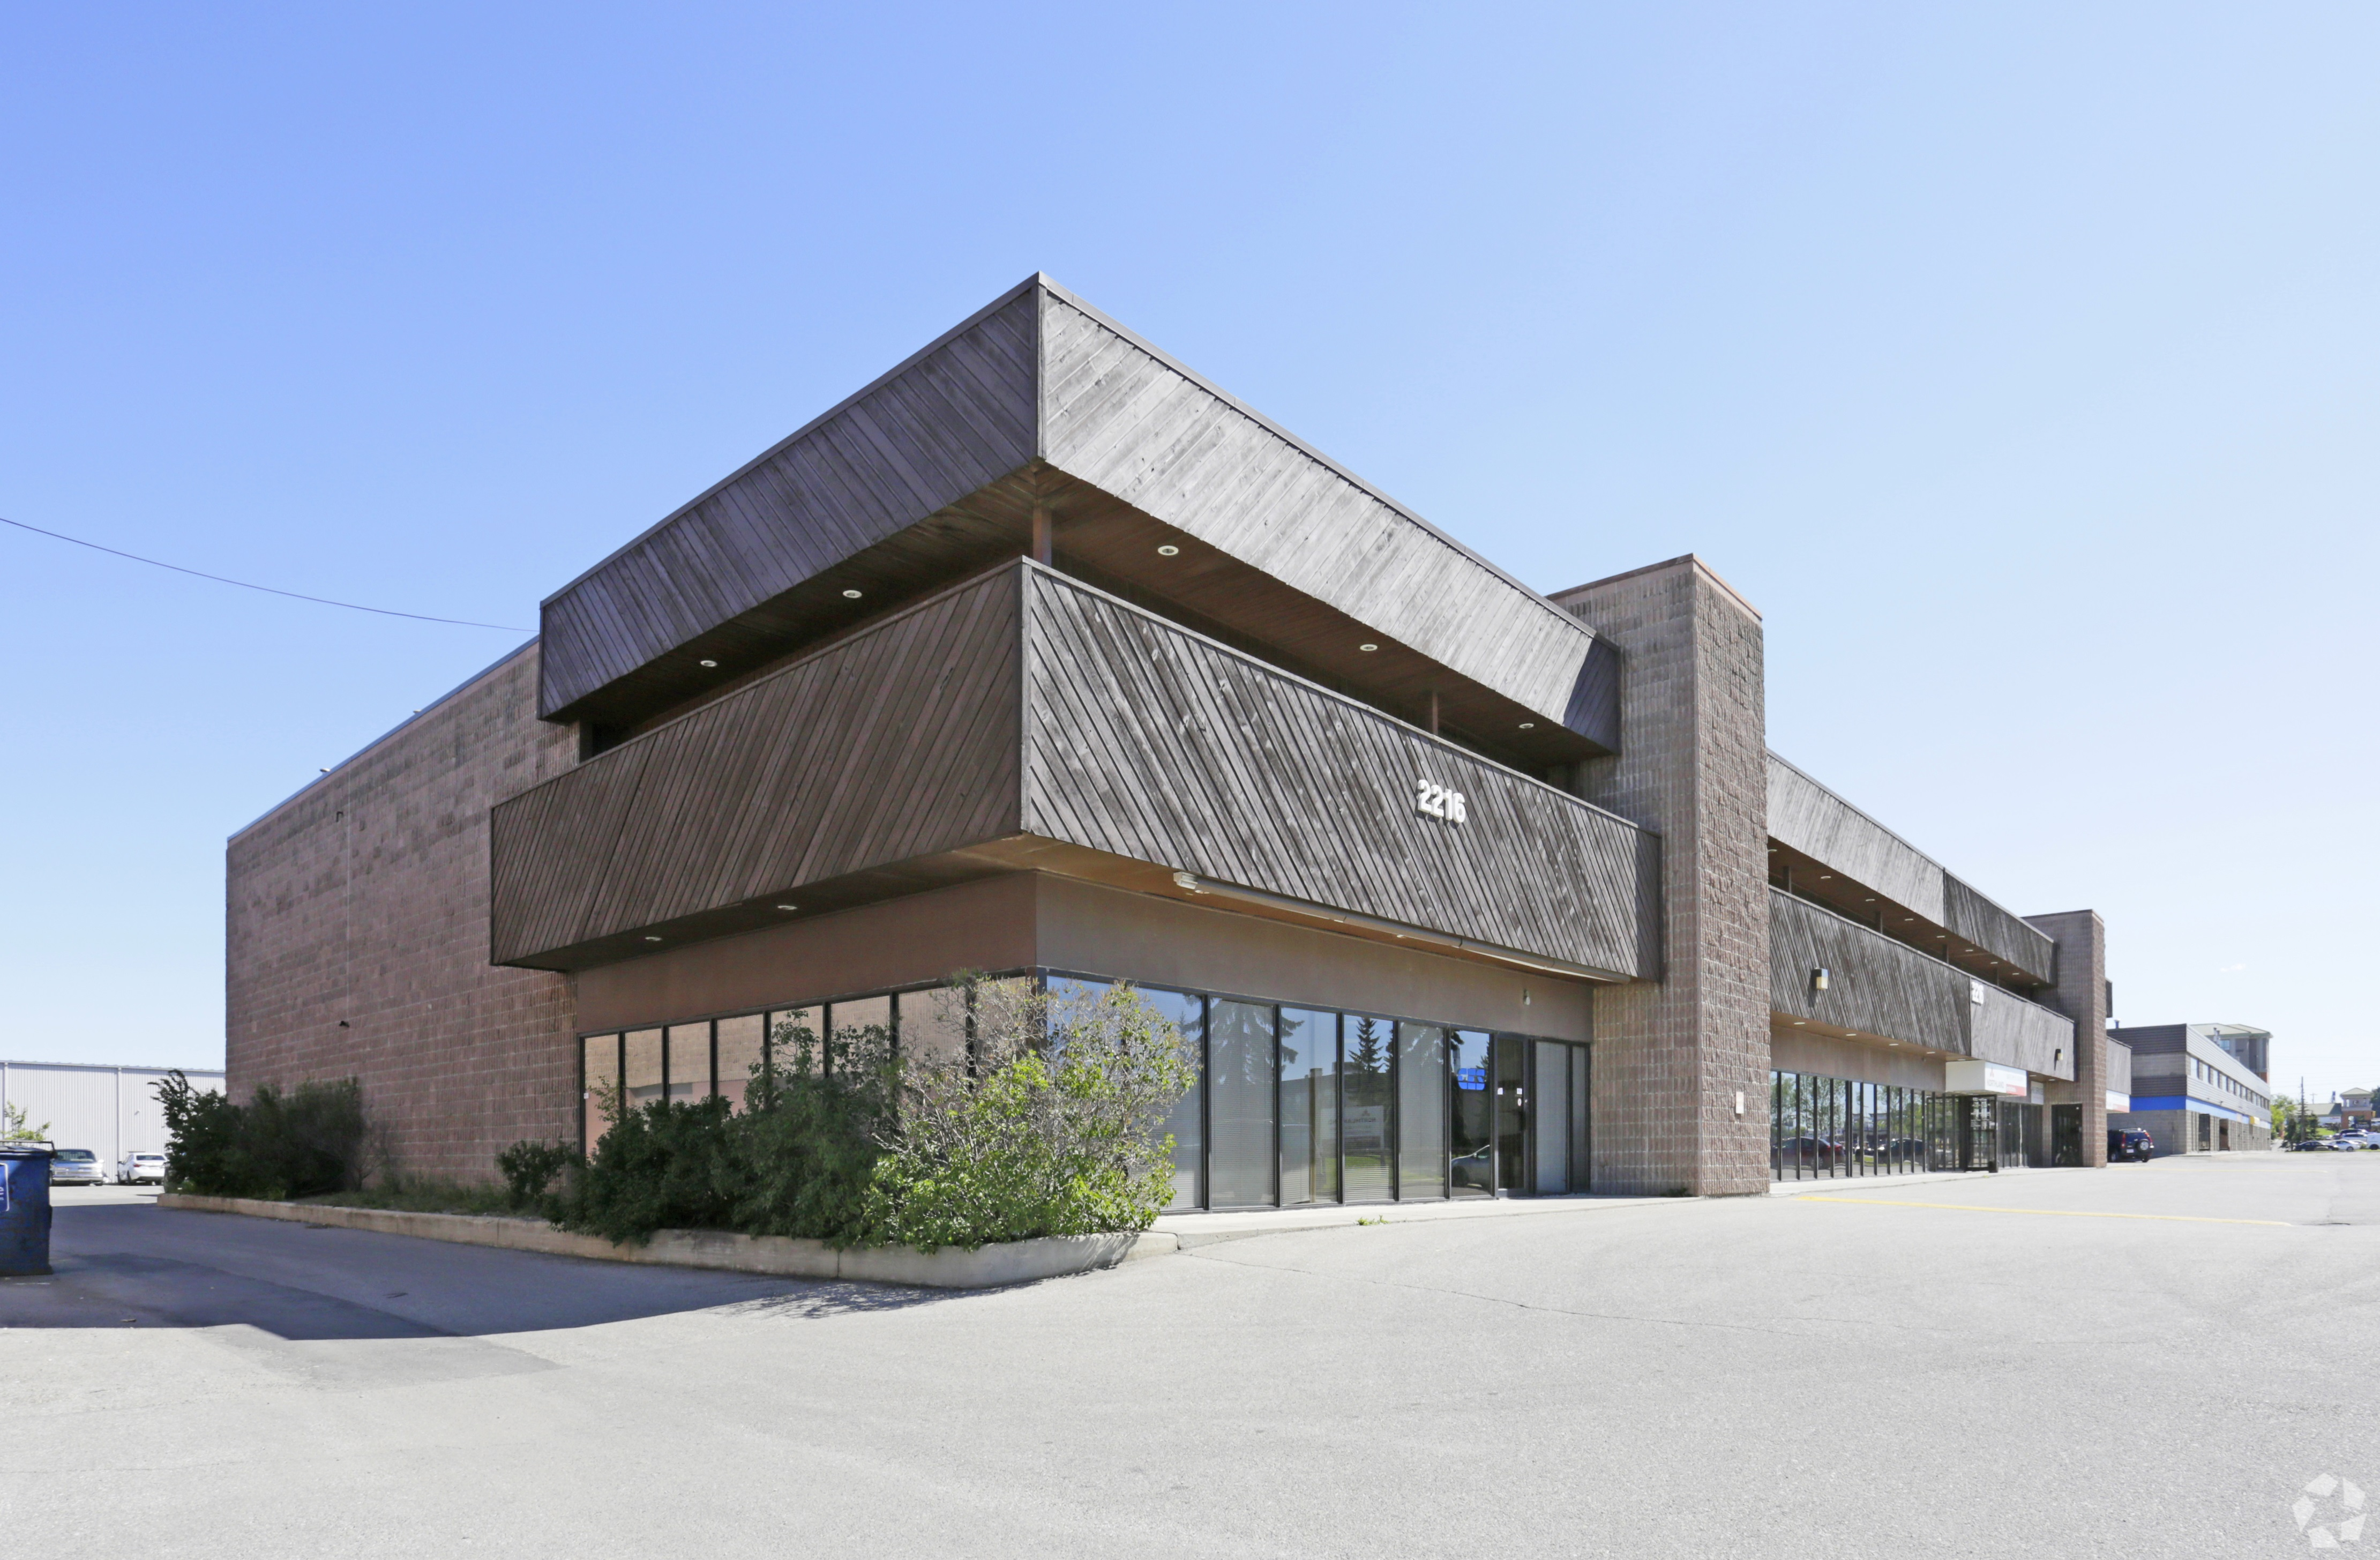 6,728 Sq. Ft. Flex Space for Lease